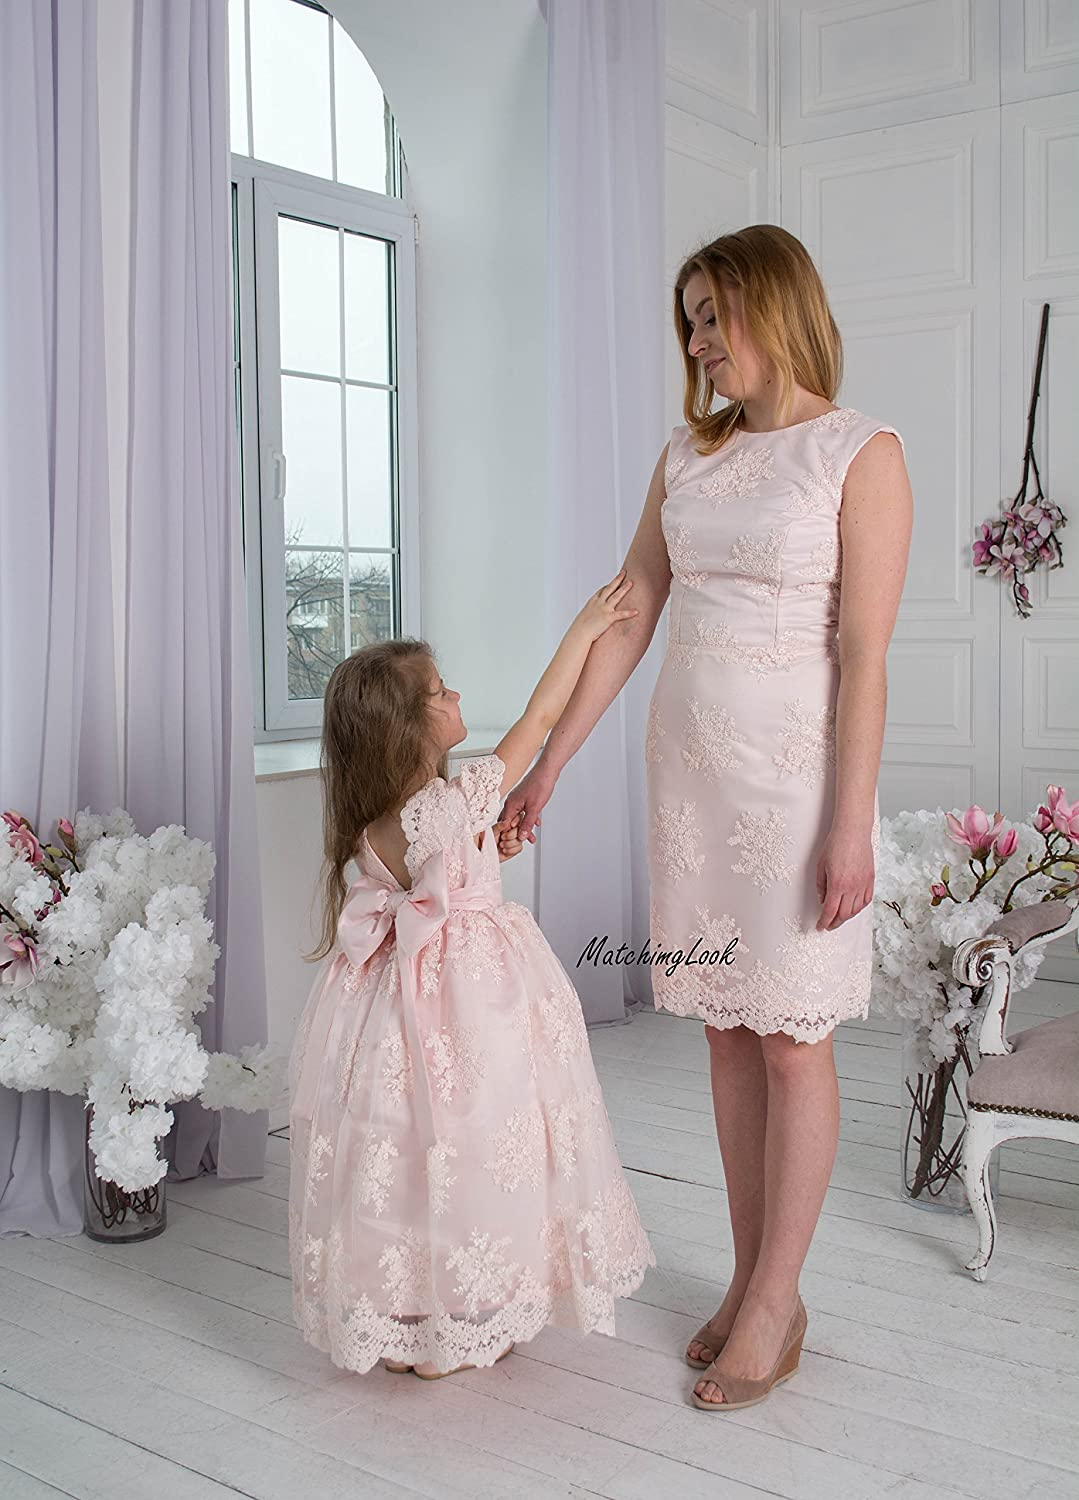 Amazon Com Pink Mommy And Me Outfits Mother Daughter Matching Dress Matching Mother Daughter Outfits Matching Mom And Baby Mother Daughter Gift Handmade,Boat Neck Satin Wedding Dress